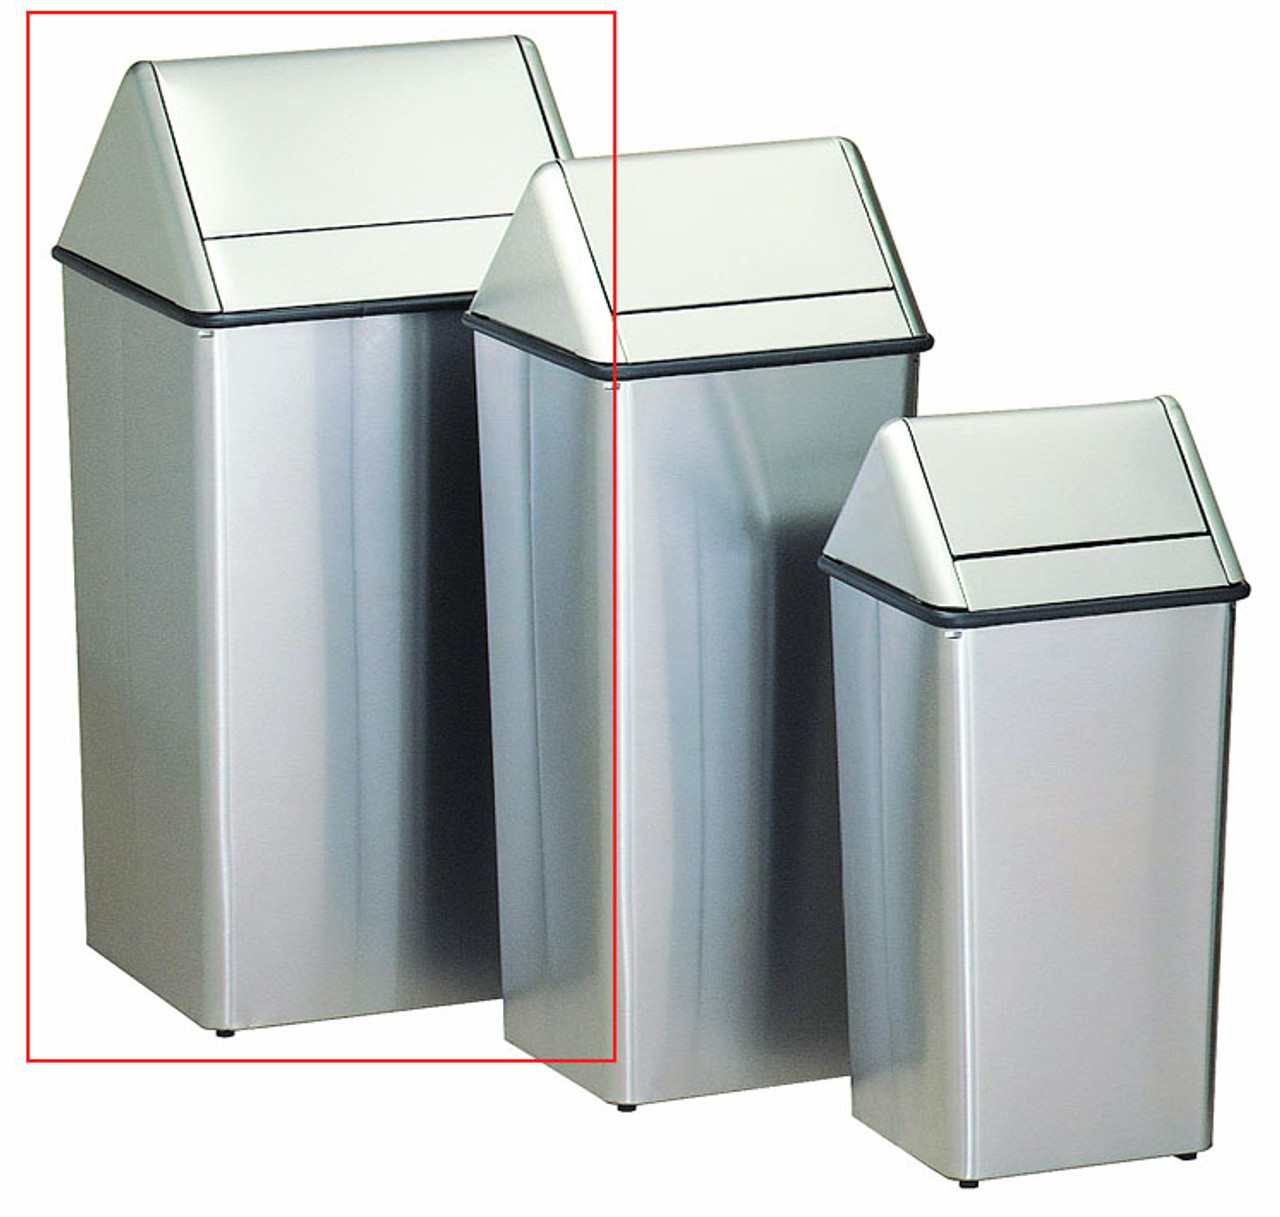 Metal Stainless Steel 36 Gallon Swing Top Waste Receptacle 1511HTSS